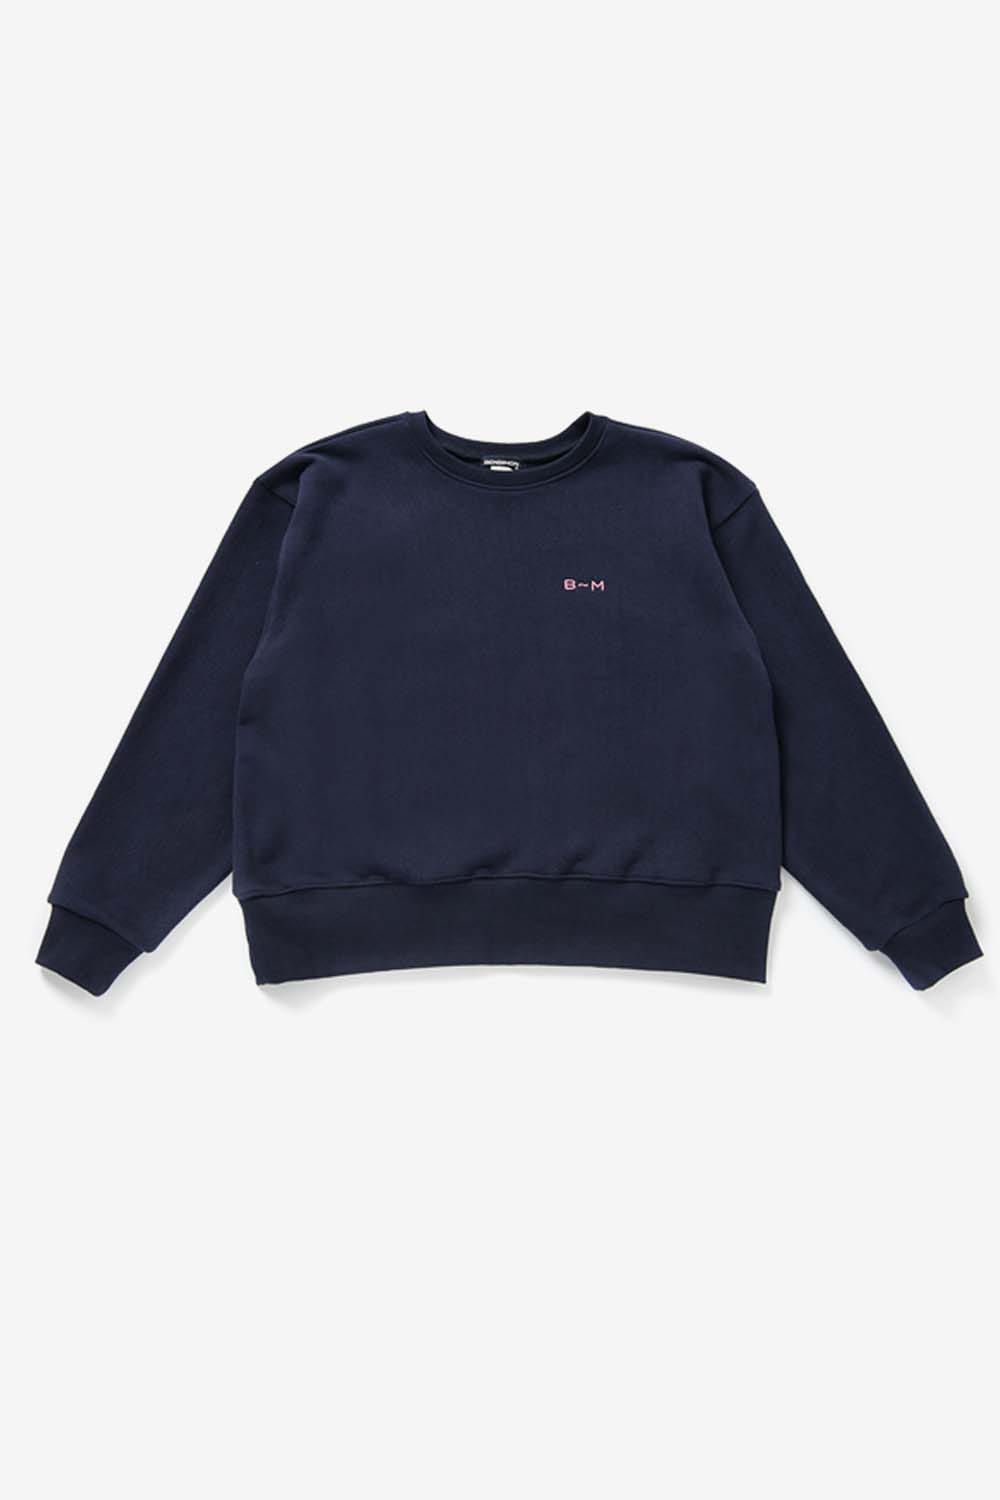 Slow B heavy MTM_Navy (UNISEX)BS9FMT203NV